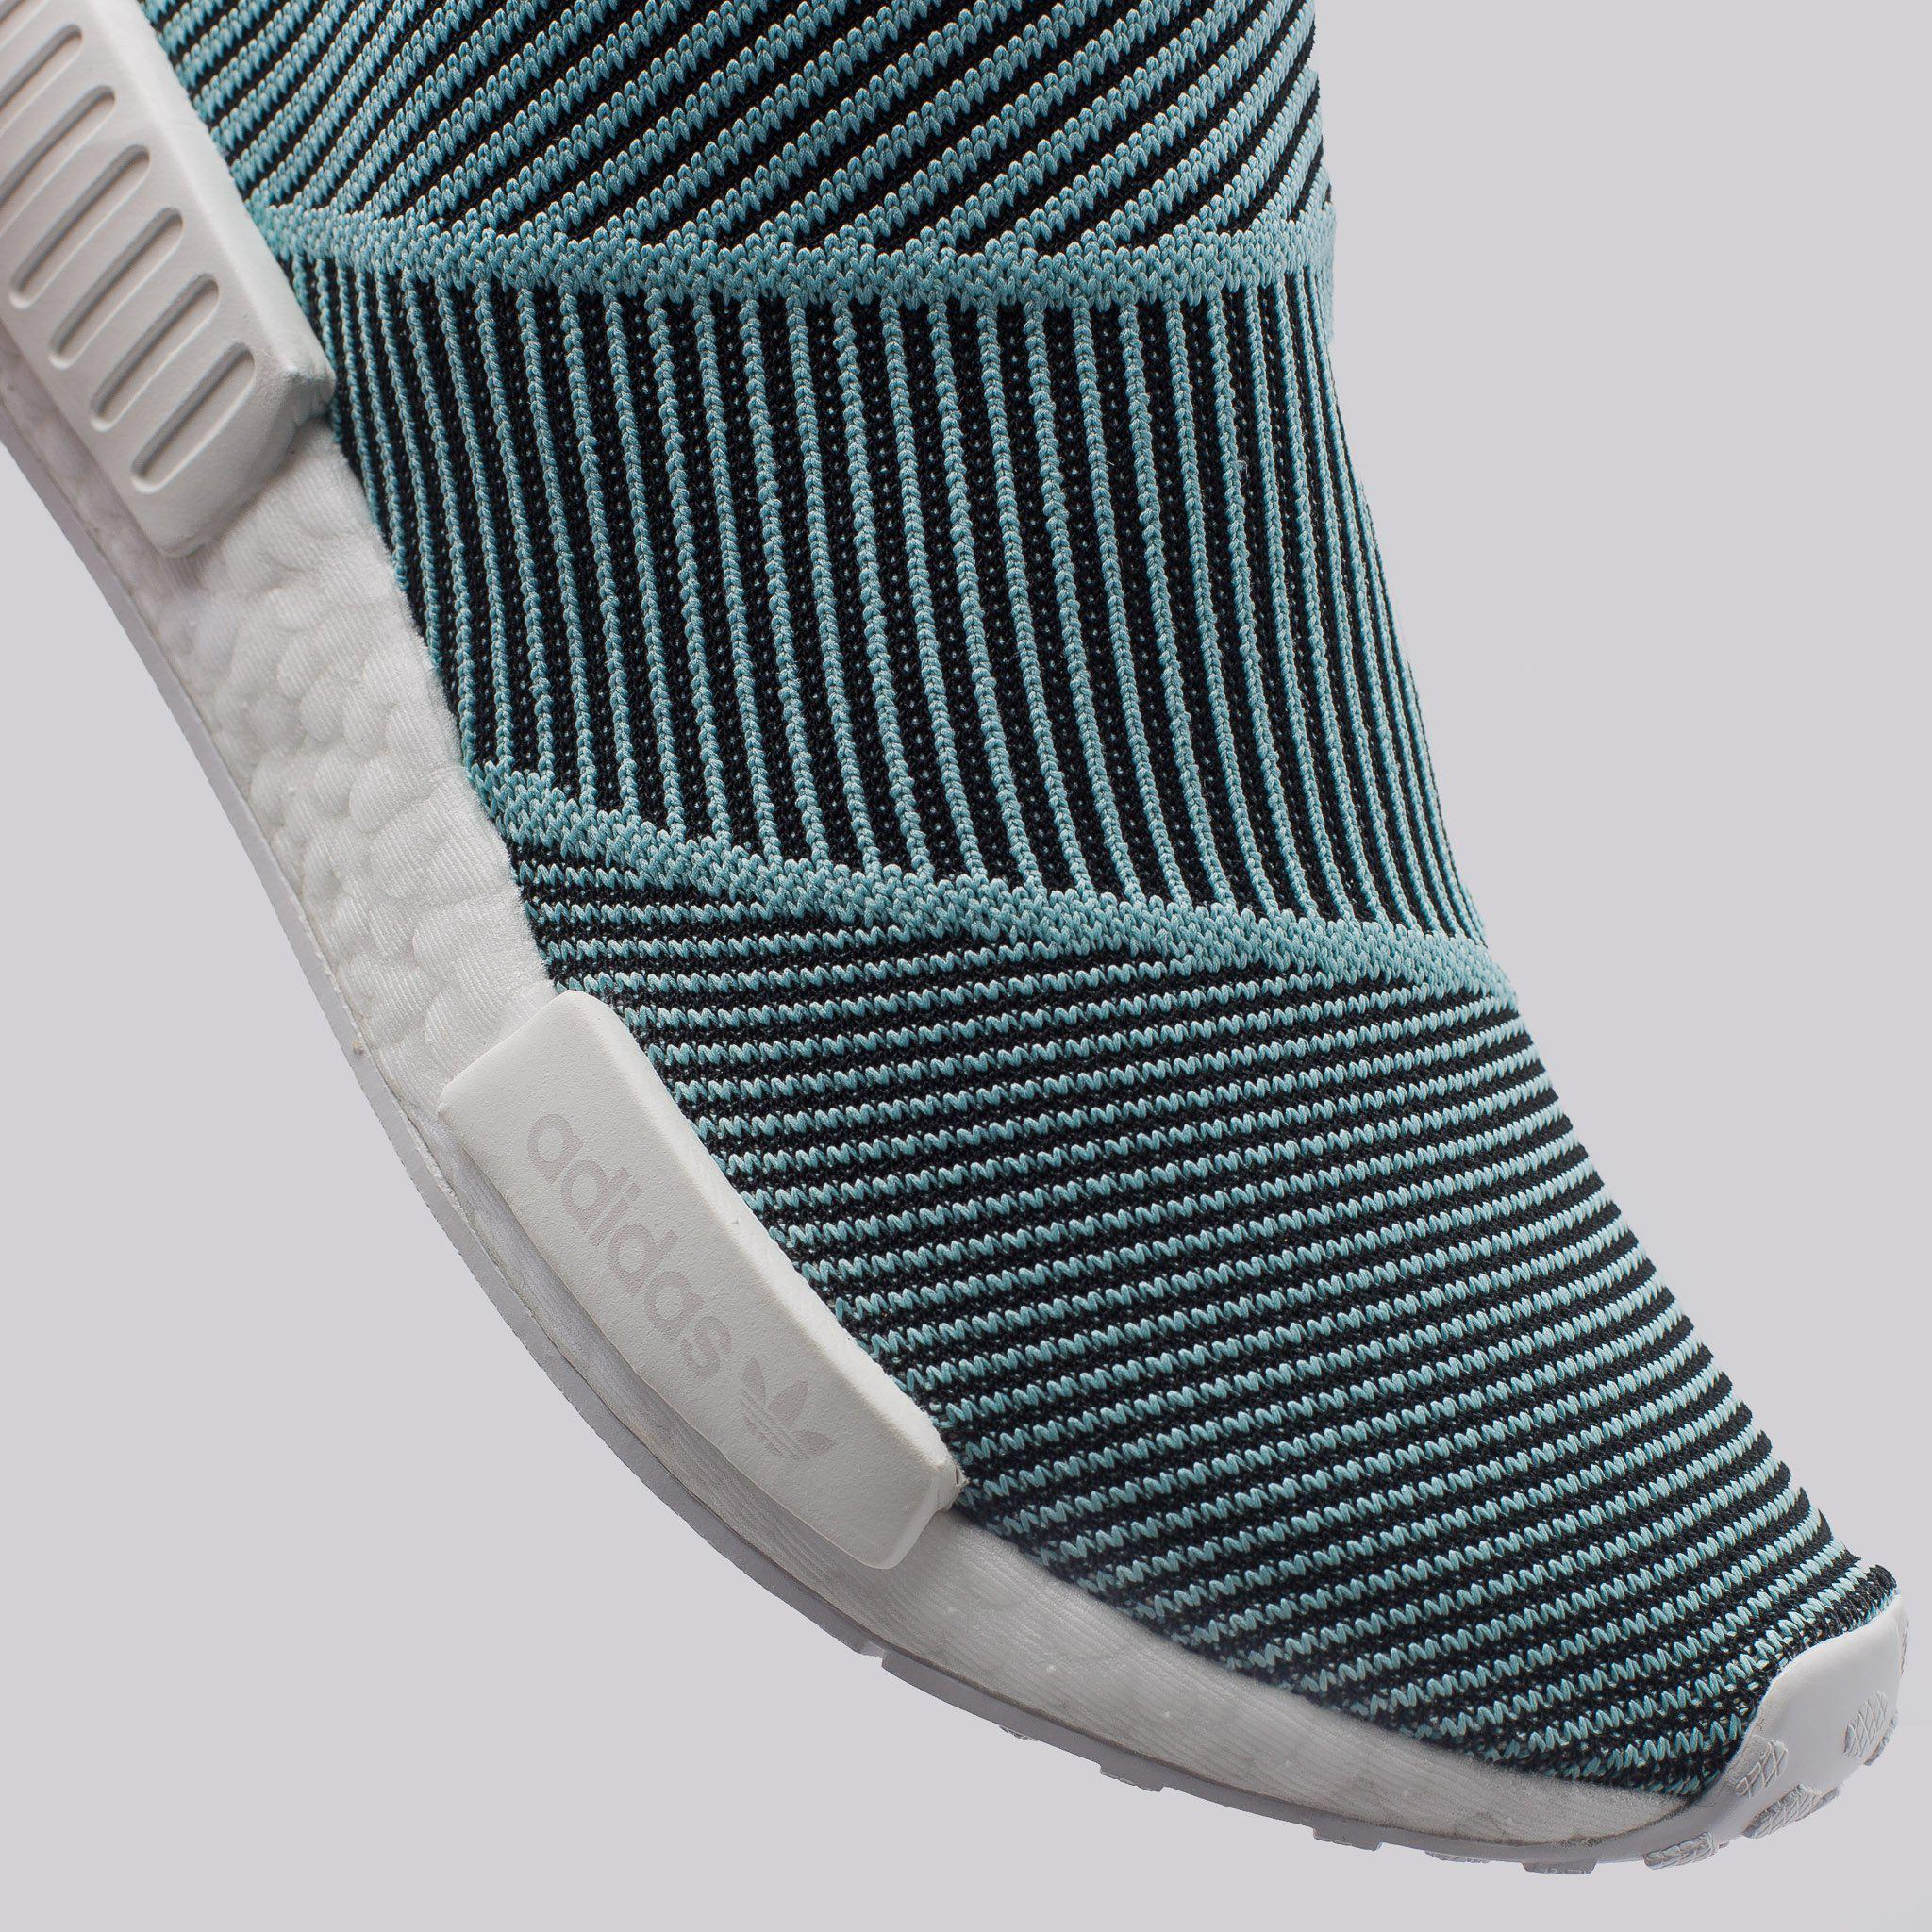 d43a6d1c8fa4a Lyst - adidas Nmd Cs1 Parley Primeknit In Core Black blue in Blue ...